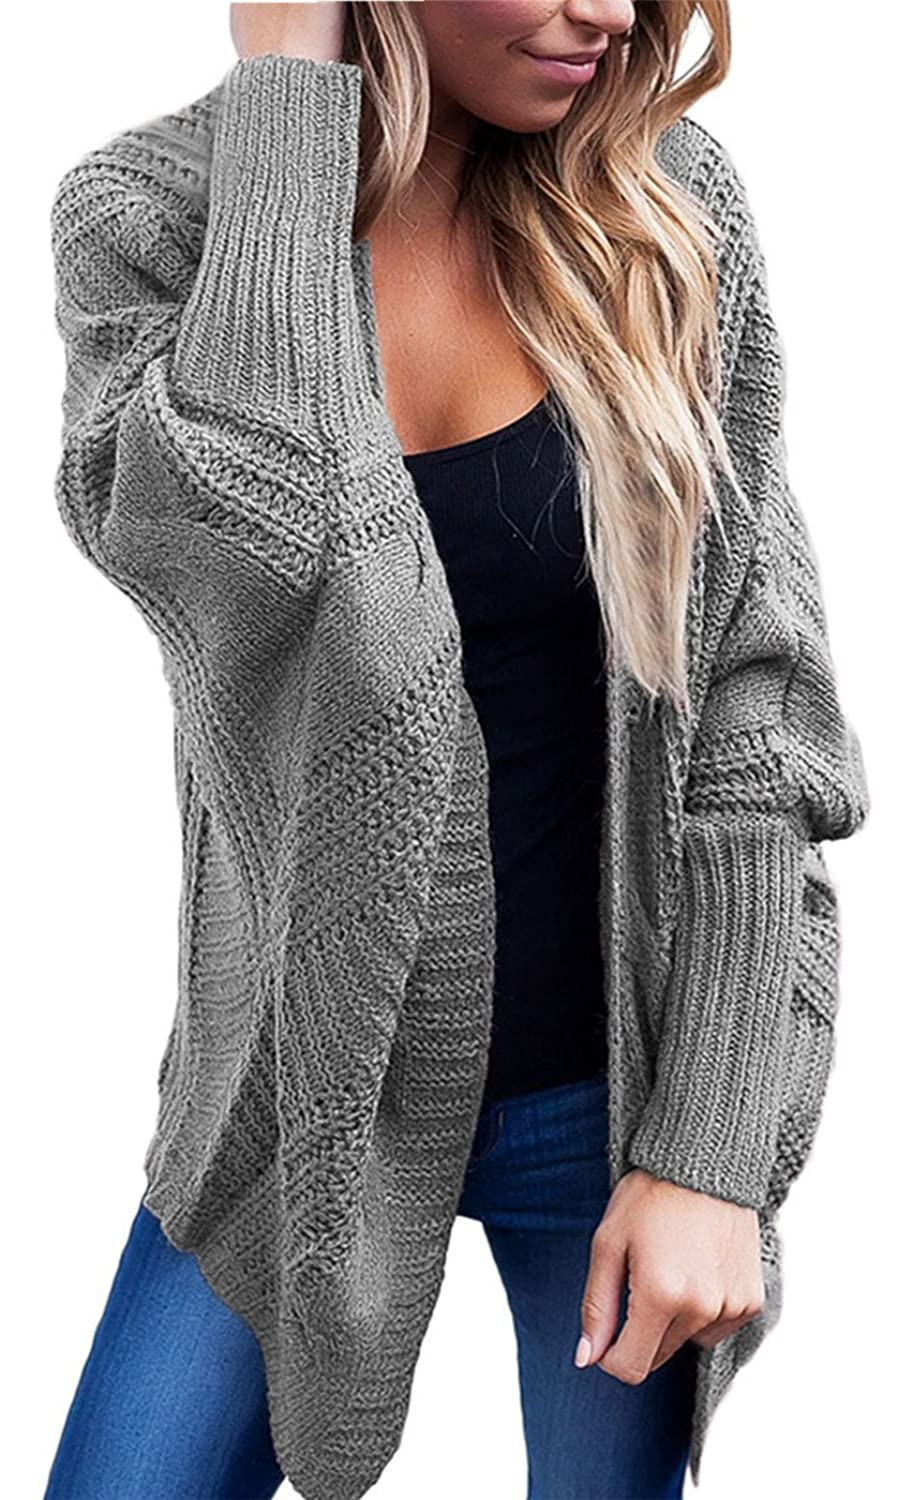 Batwing Dolman Sleeve Cable Stitch Longline Chunky Cardigan Sweater Coat Top In Cocoon Shape